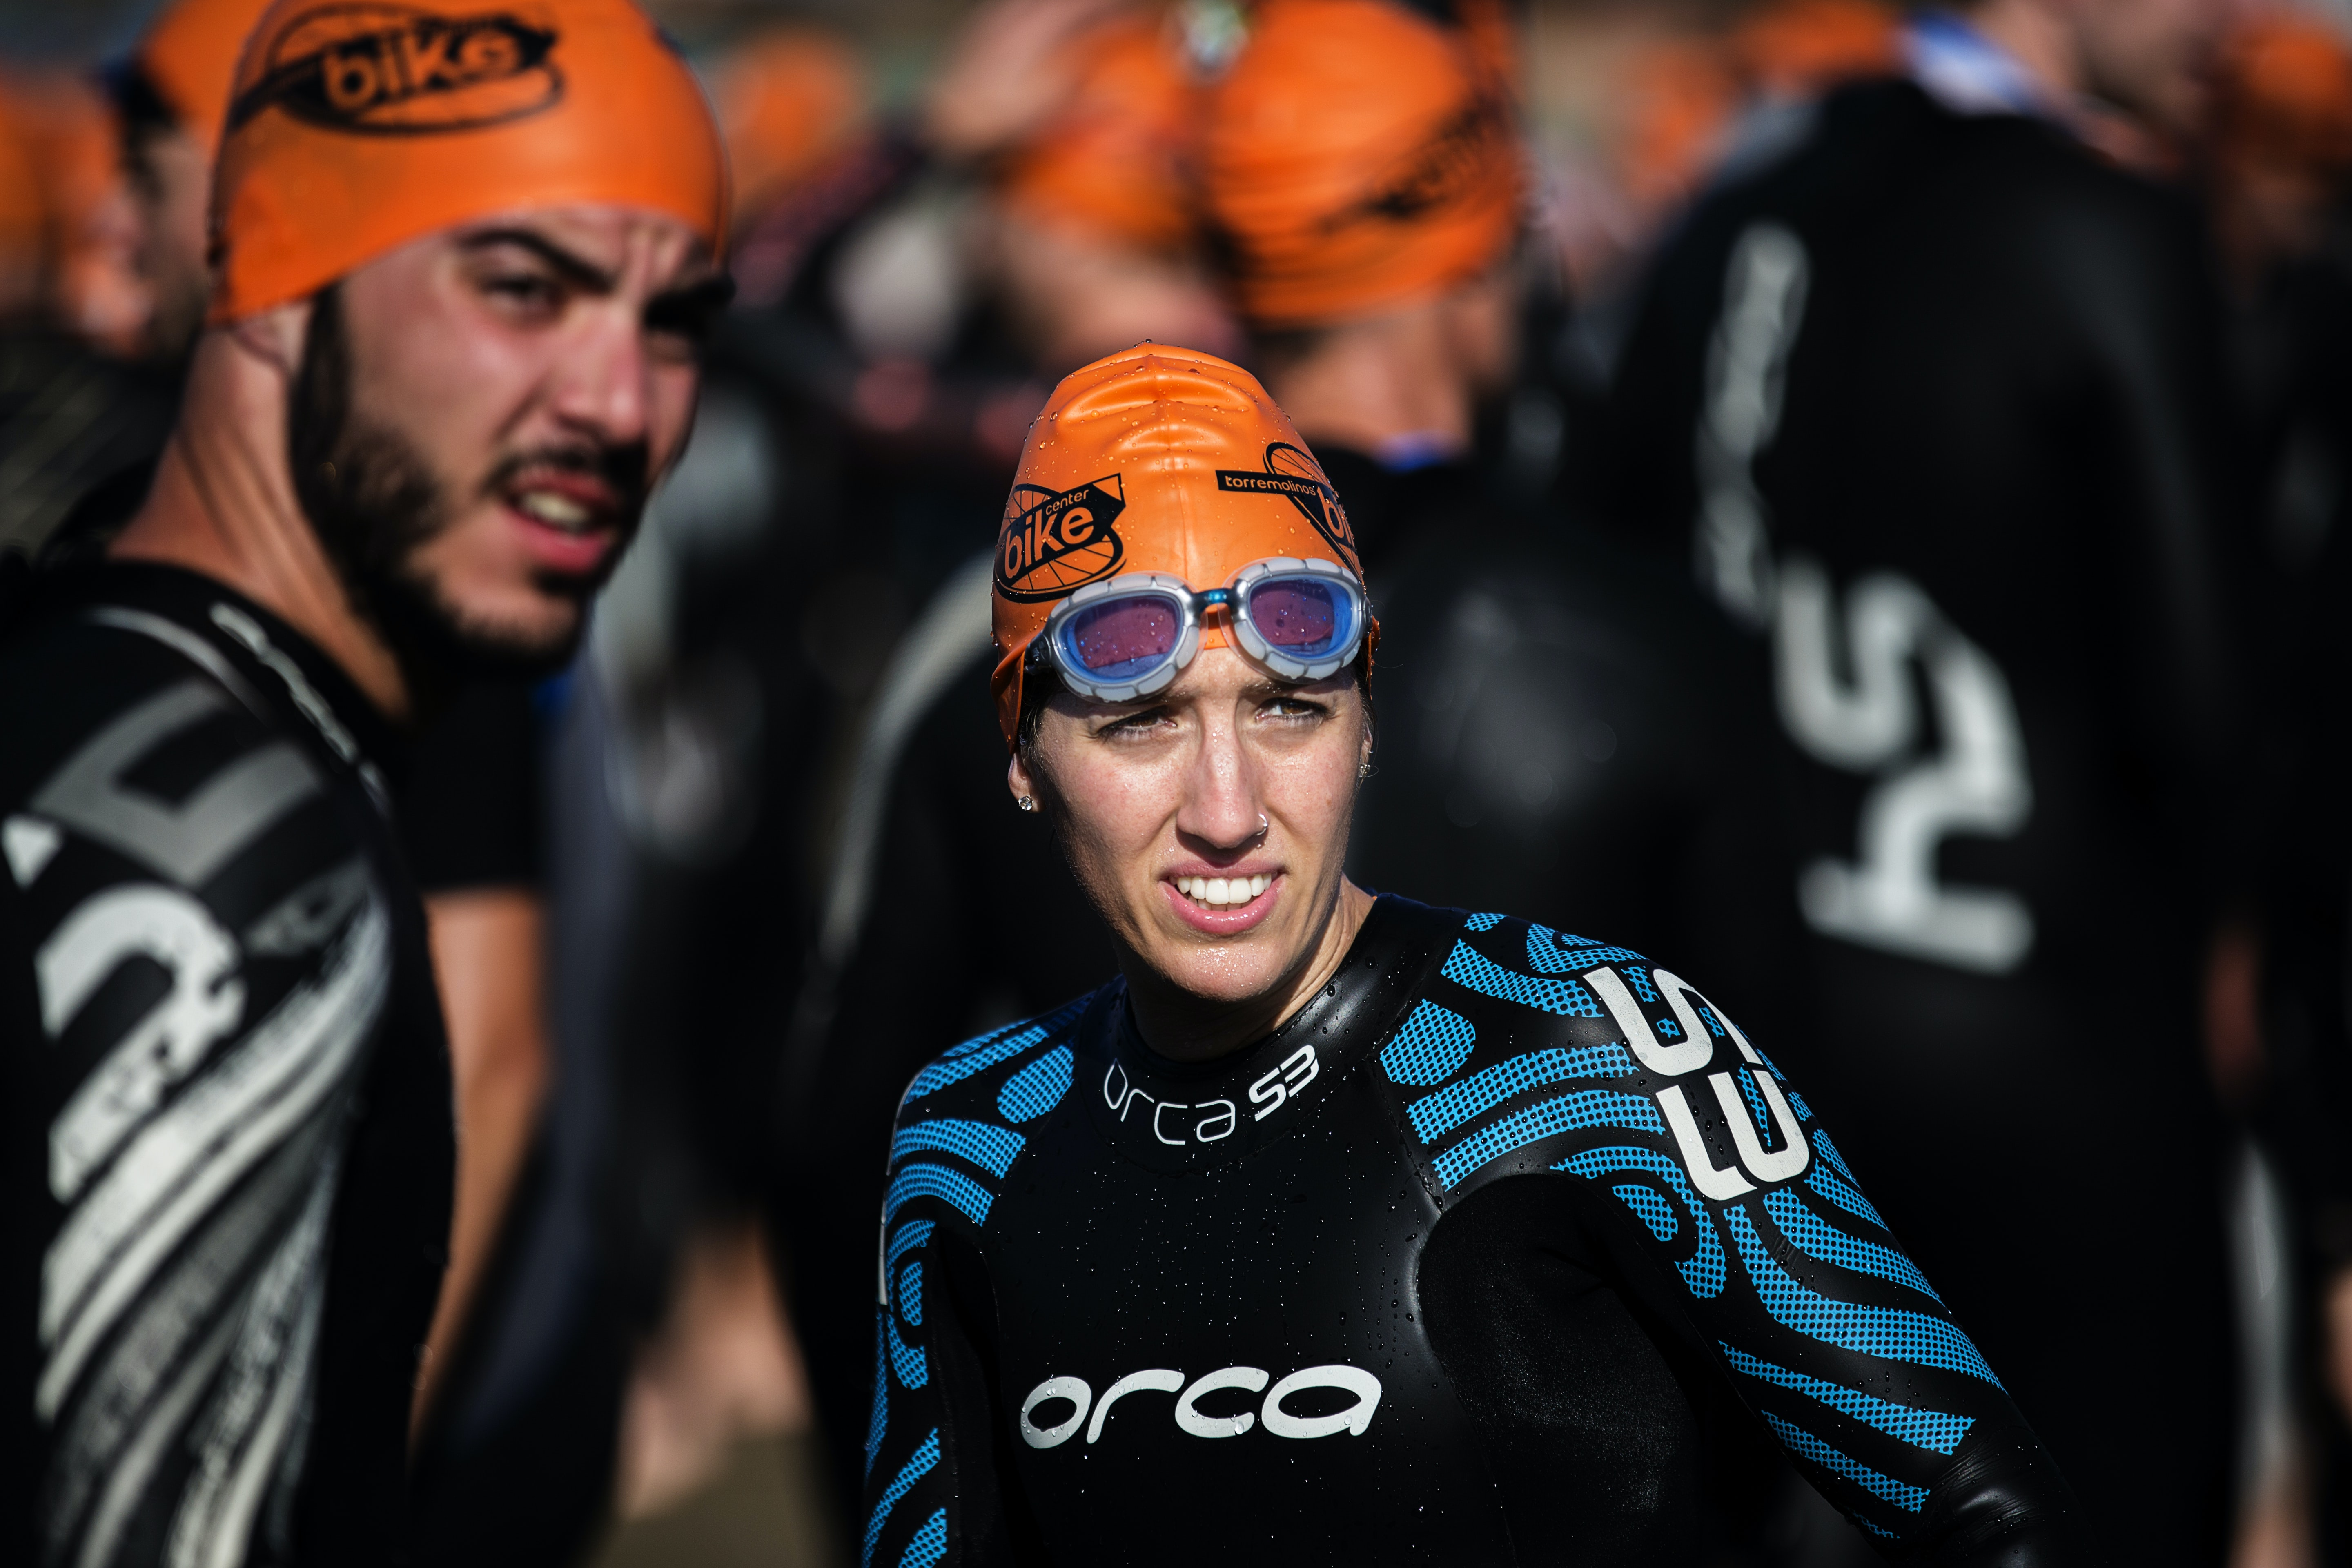 Triathletes wearing a wetsuit and goggles rest before a race